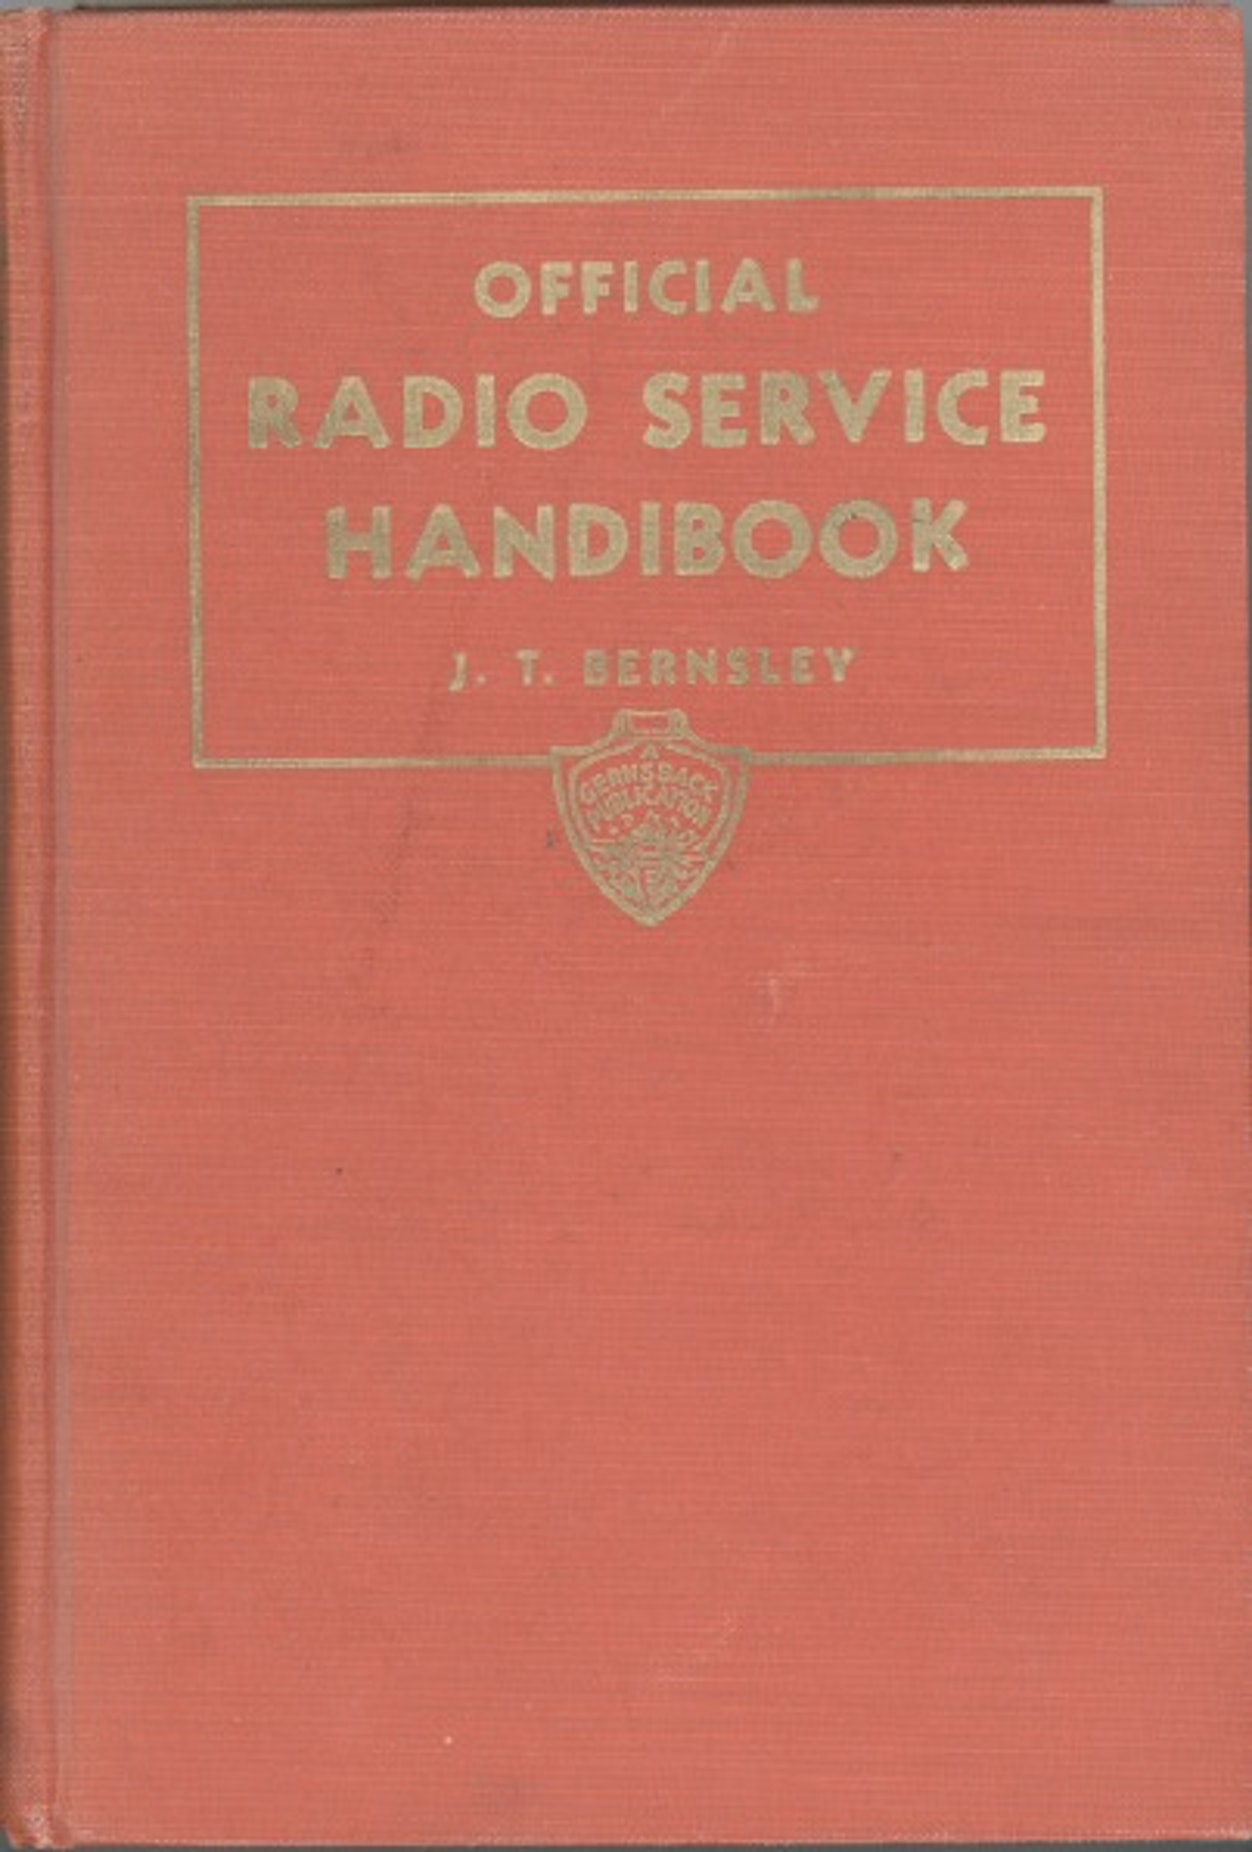 Official Radio Service Handbook